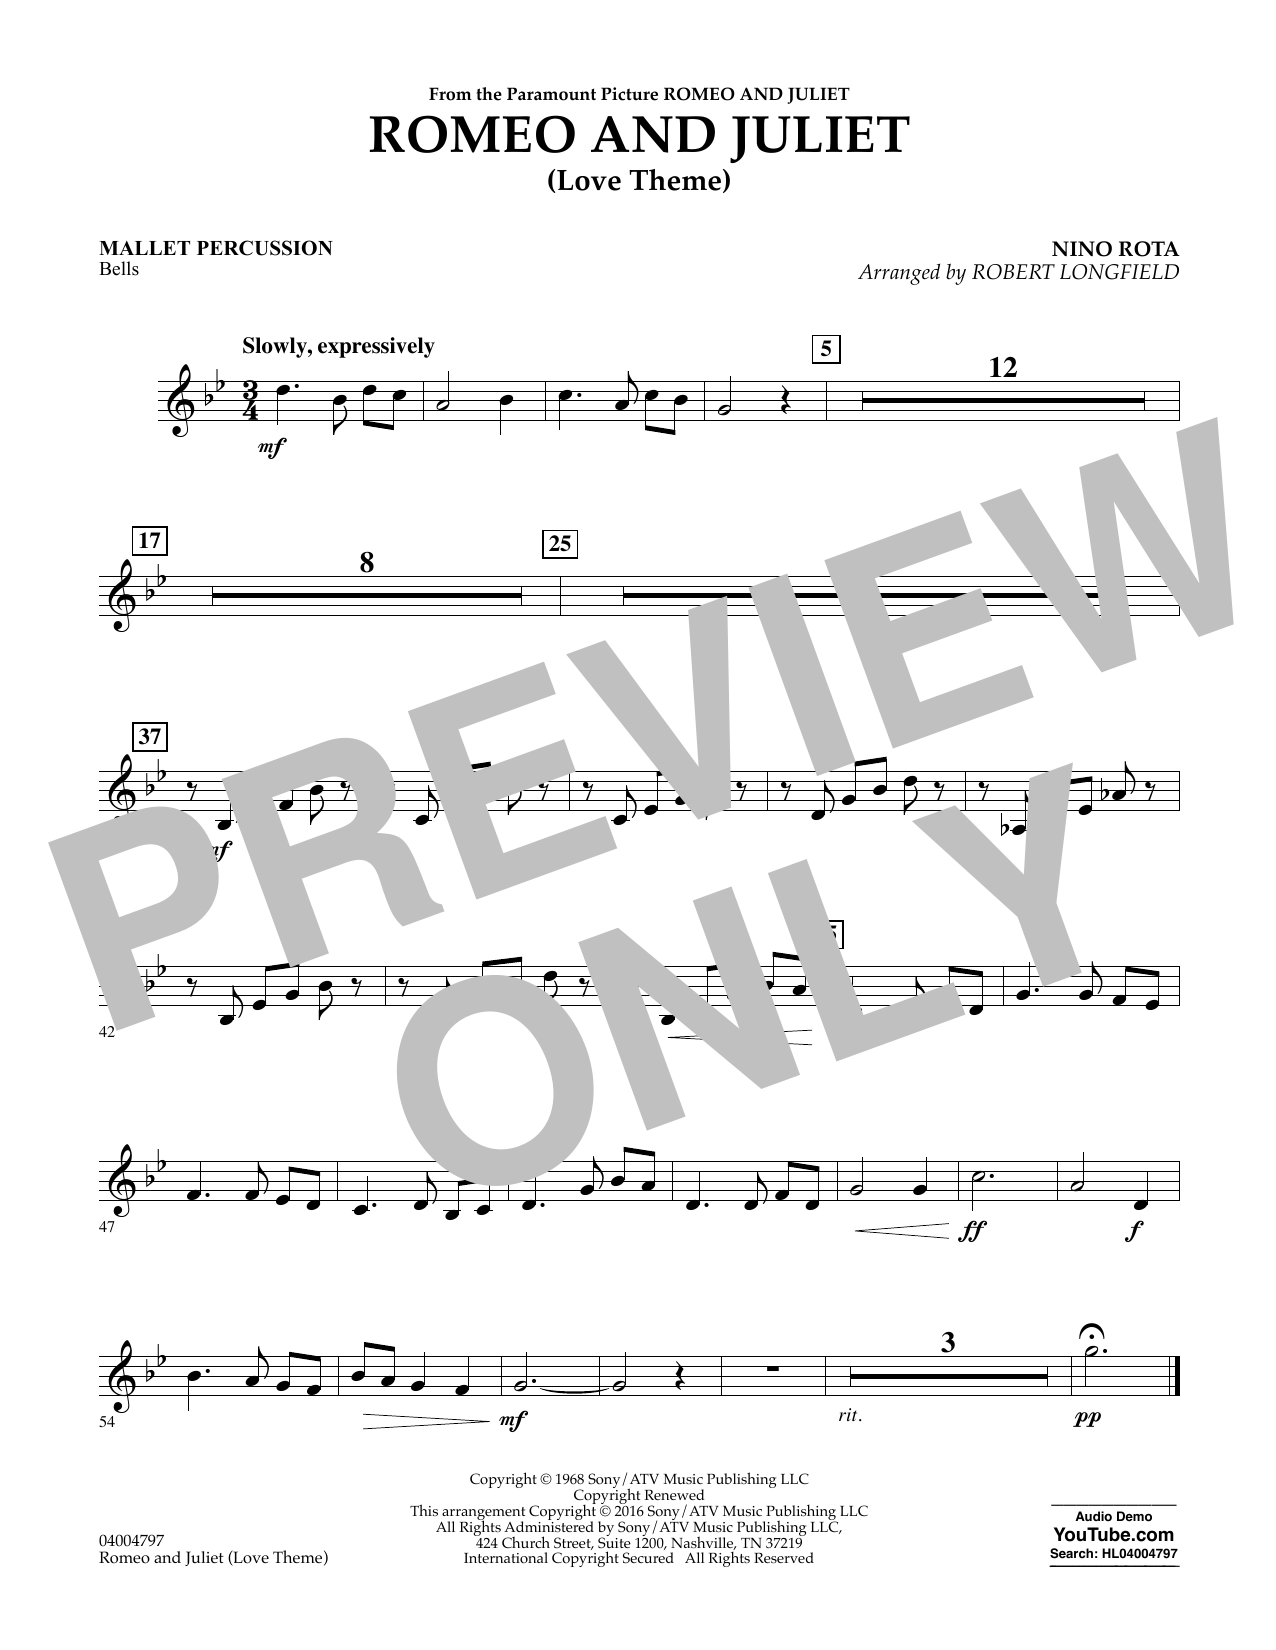 Romeo and Juliet (Love Theme) - Mallet Percussion (Concert Band)